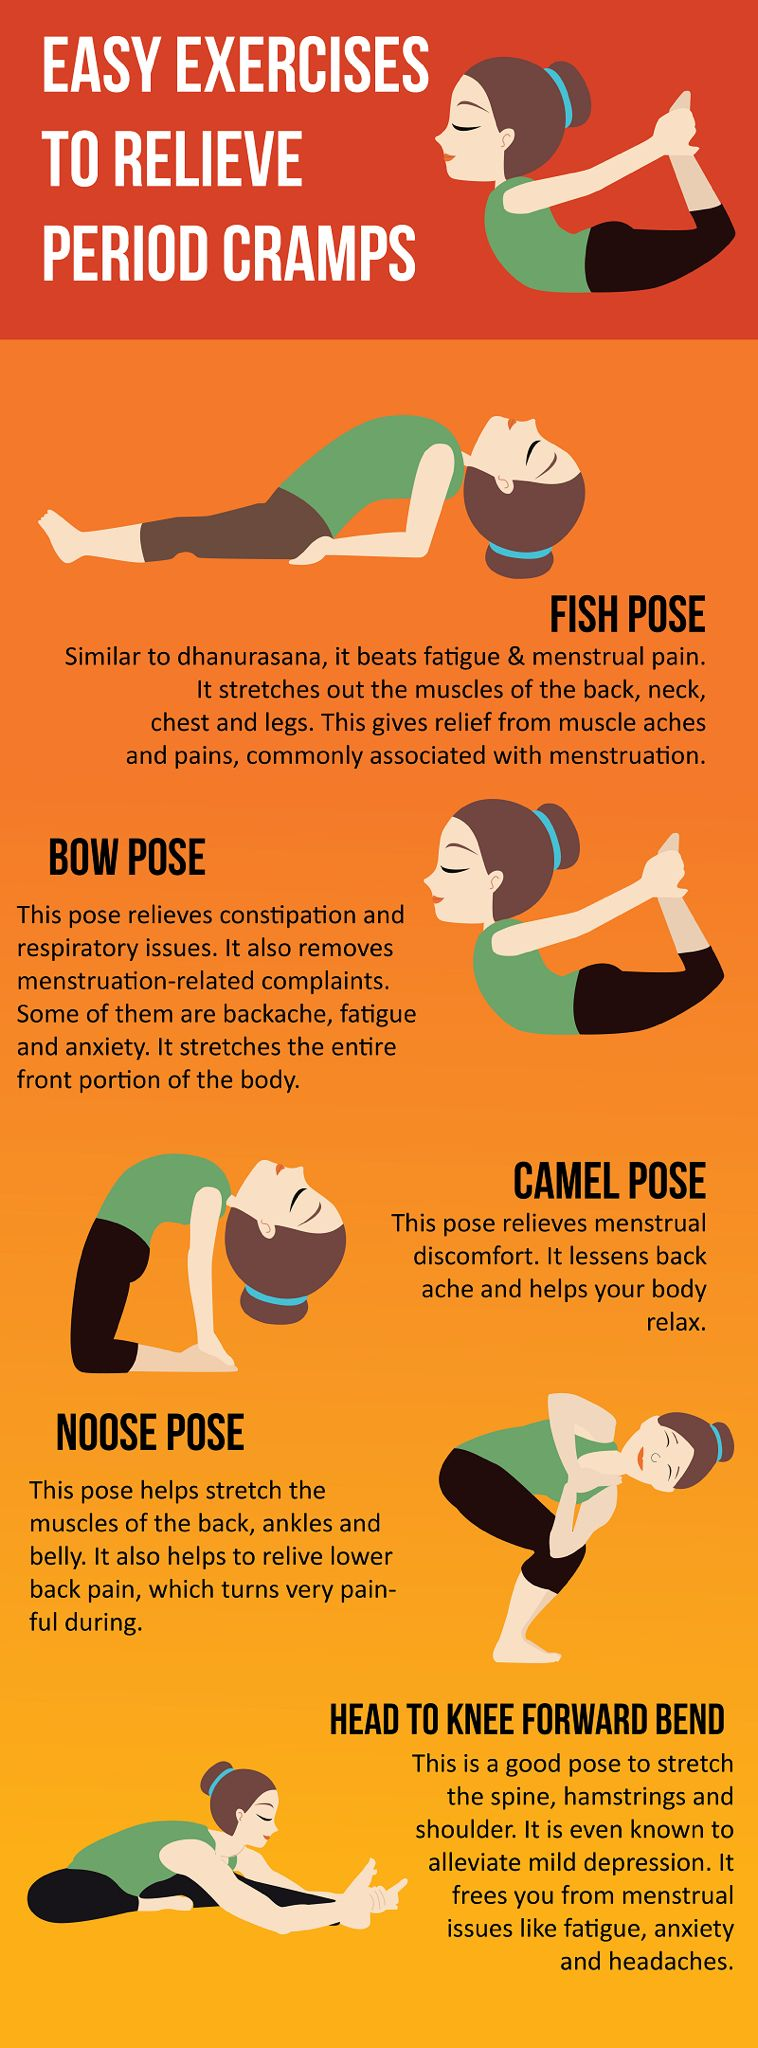 easy exercises to relieve period cramps periodcramps cramps exercises easy periods [ 758 x 2048 Pixel ]